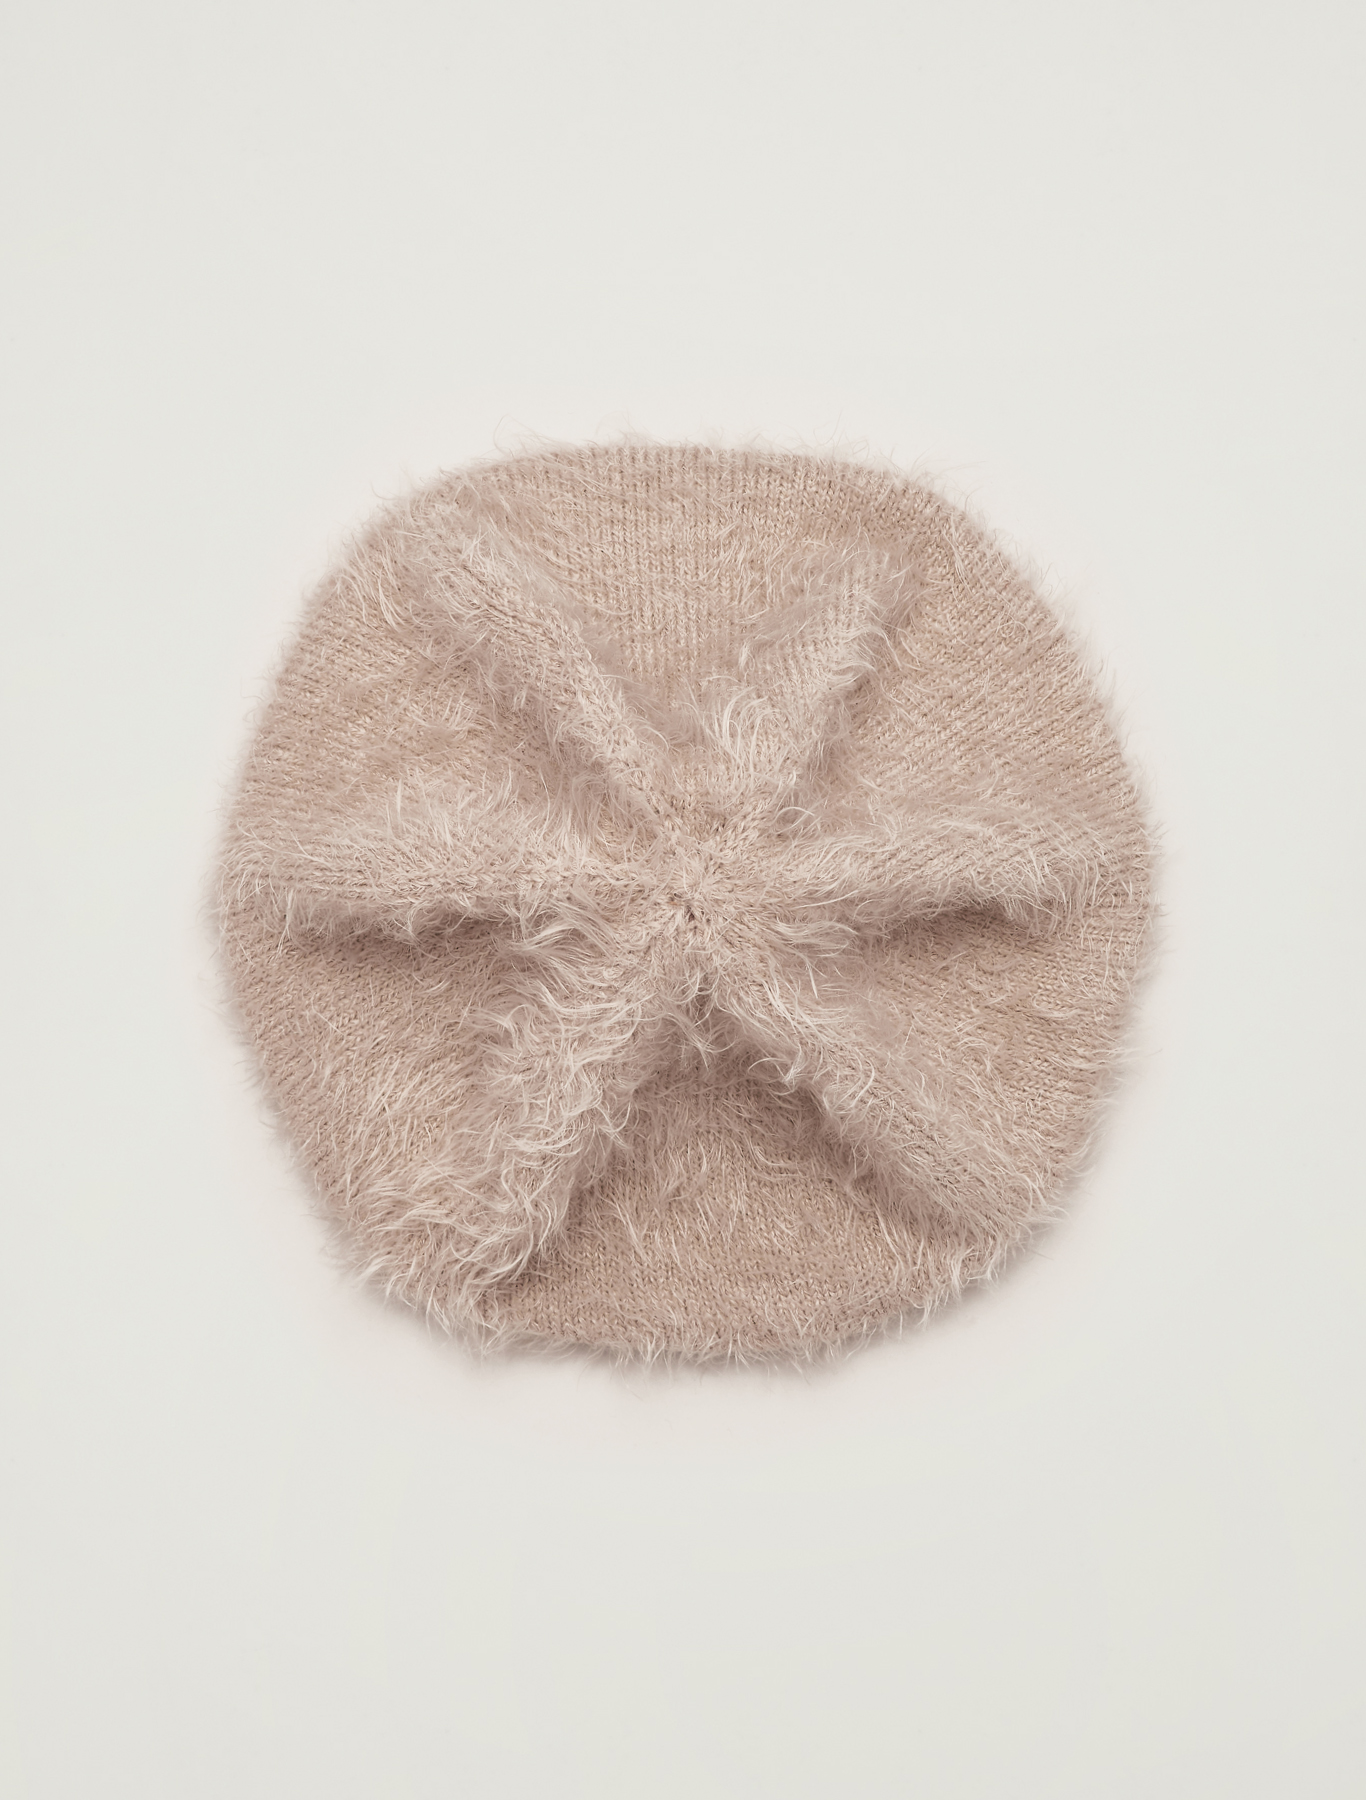 Plush knit beret - light grey - pennyblack